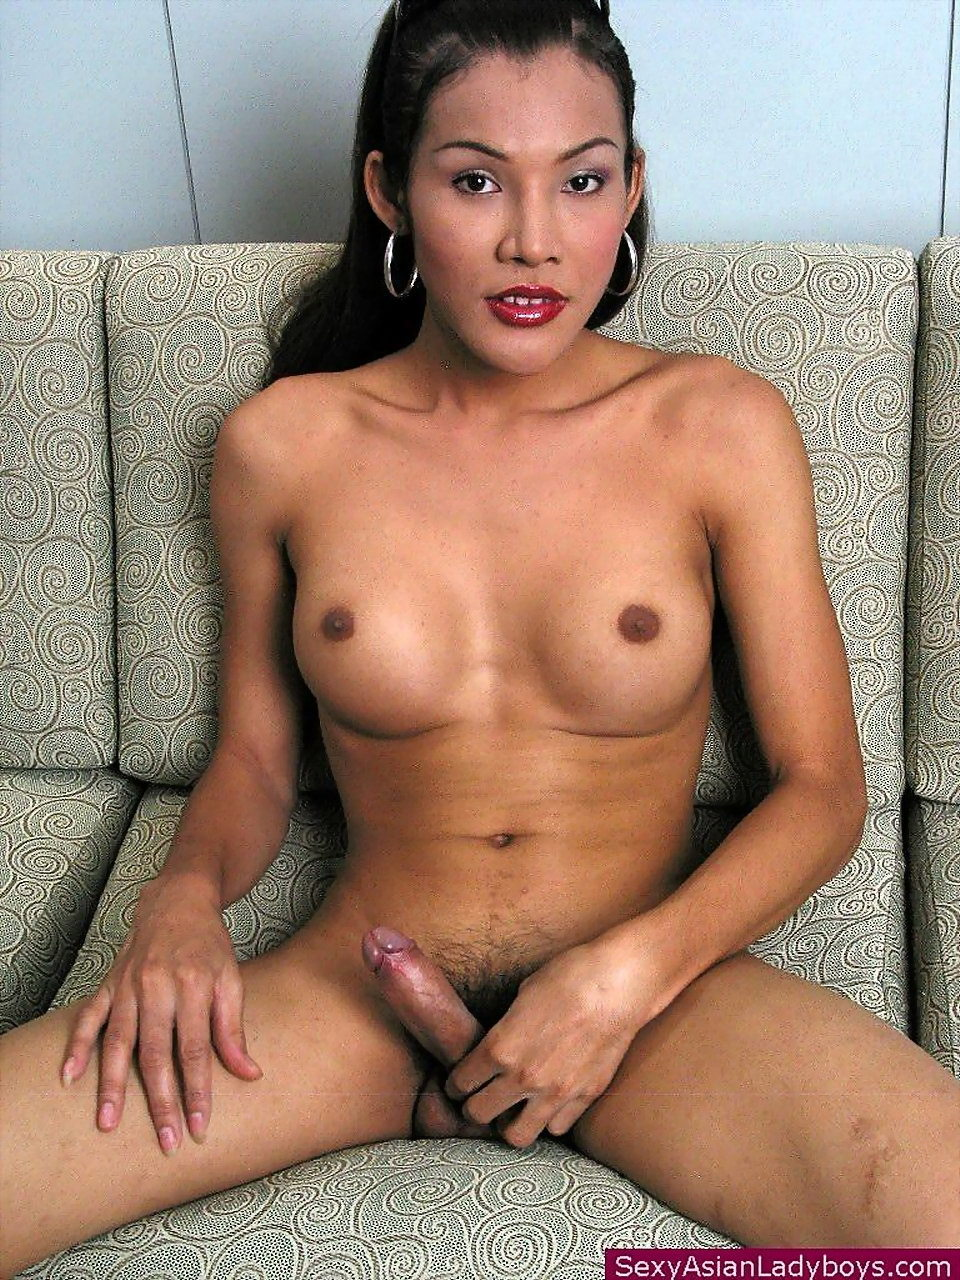 Busty T-Girl Proudly Playing With Her Rock Raw Schlong